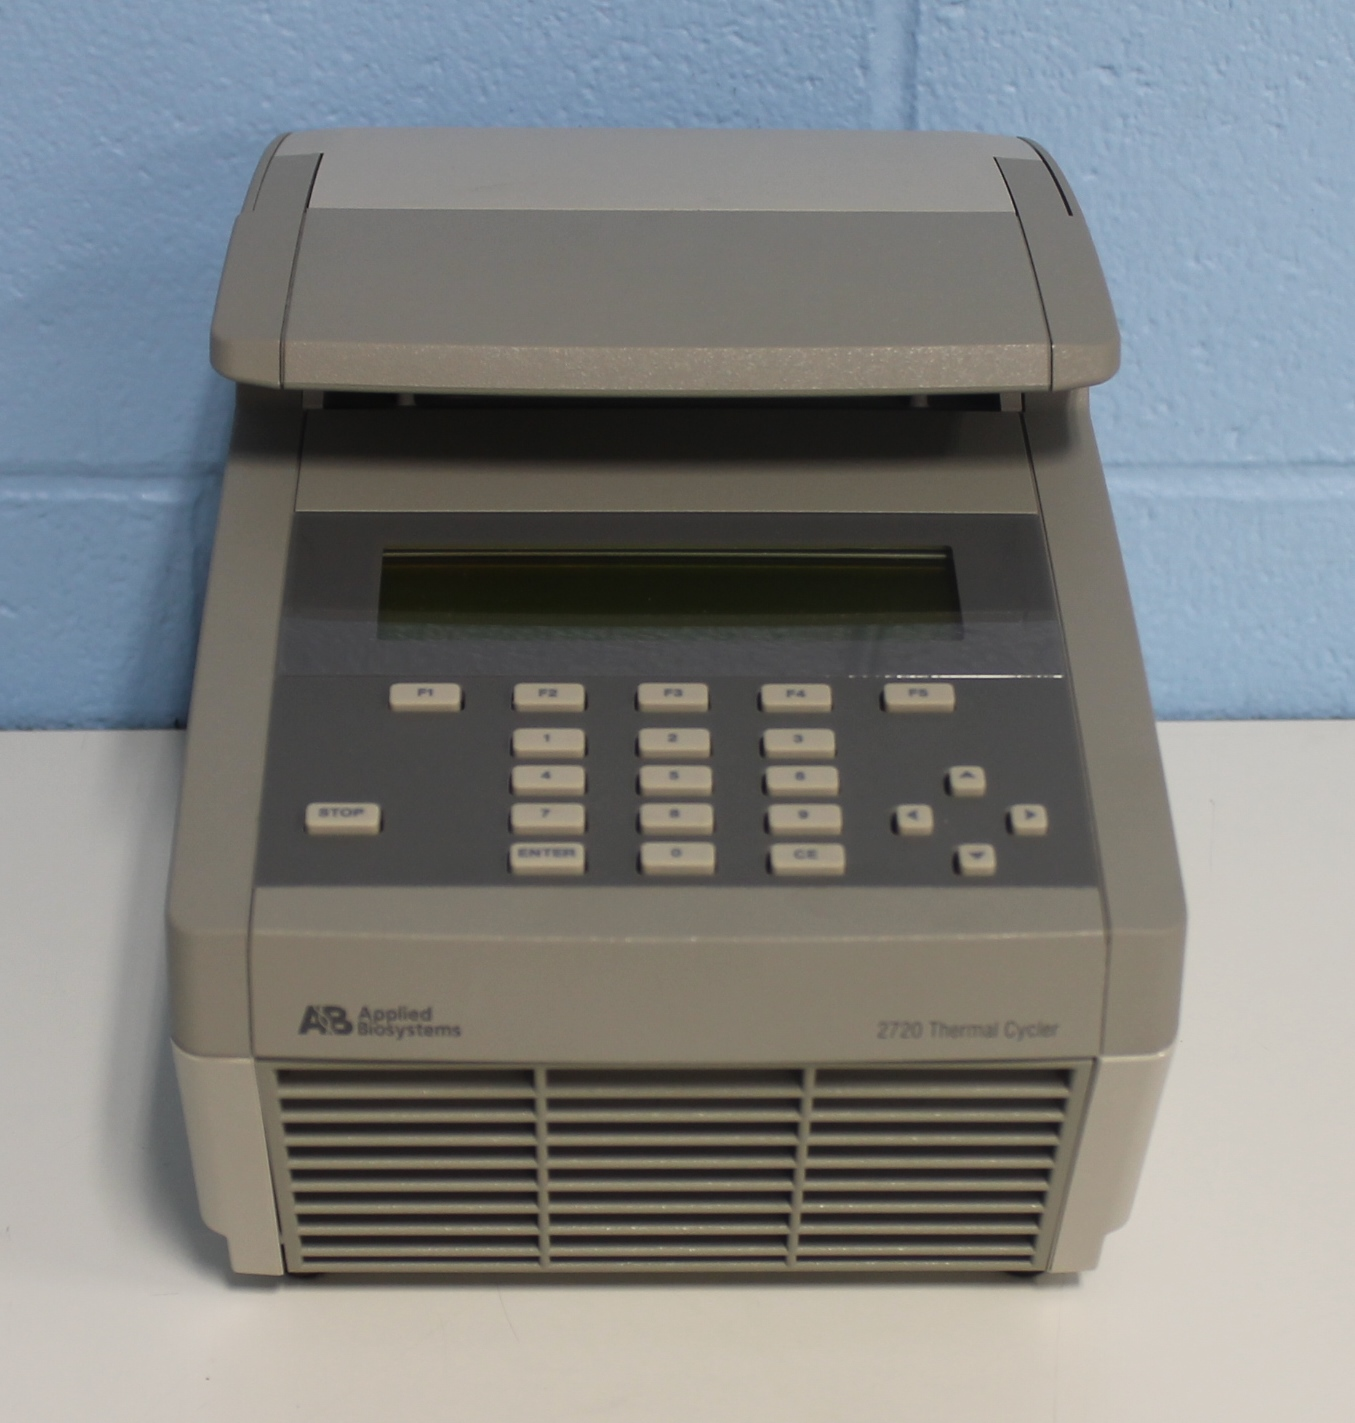 Applied Biosystems 2720 Thermal Cycler Image